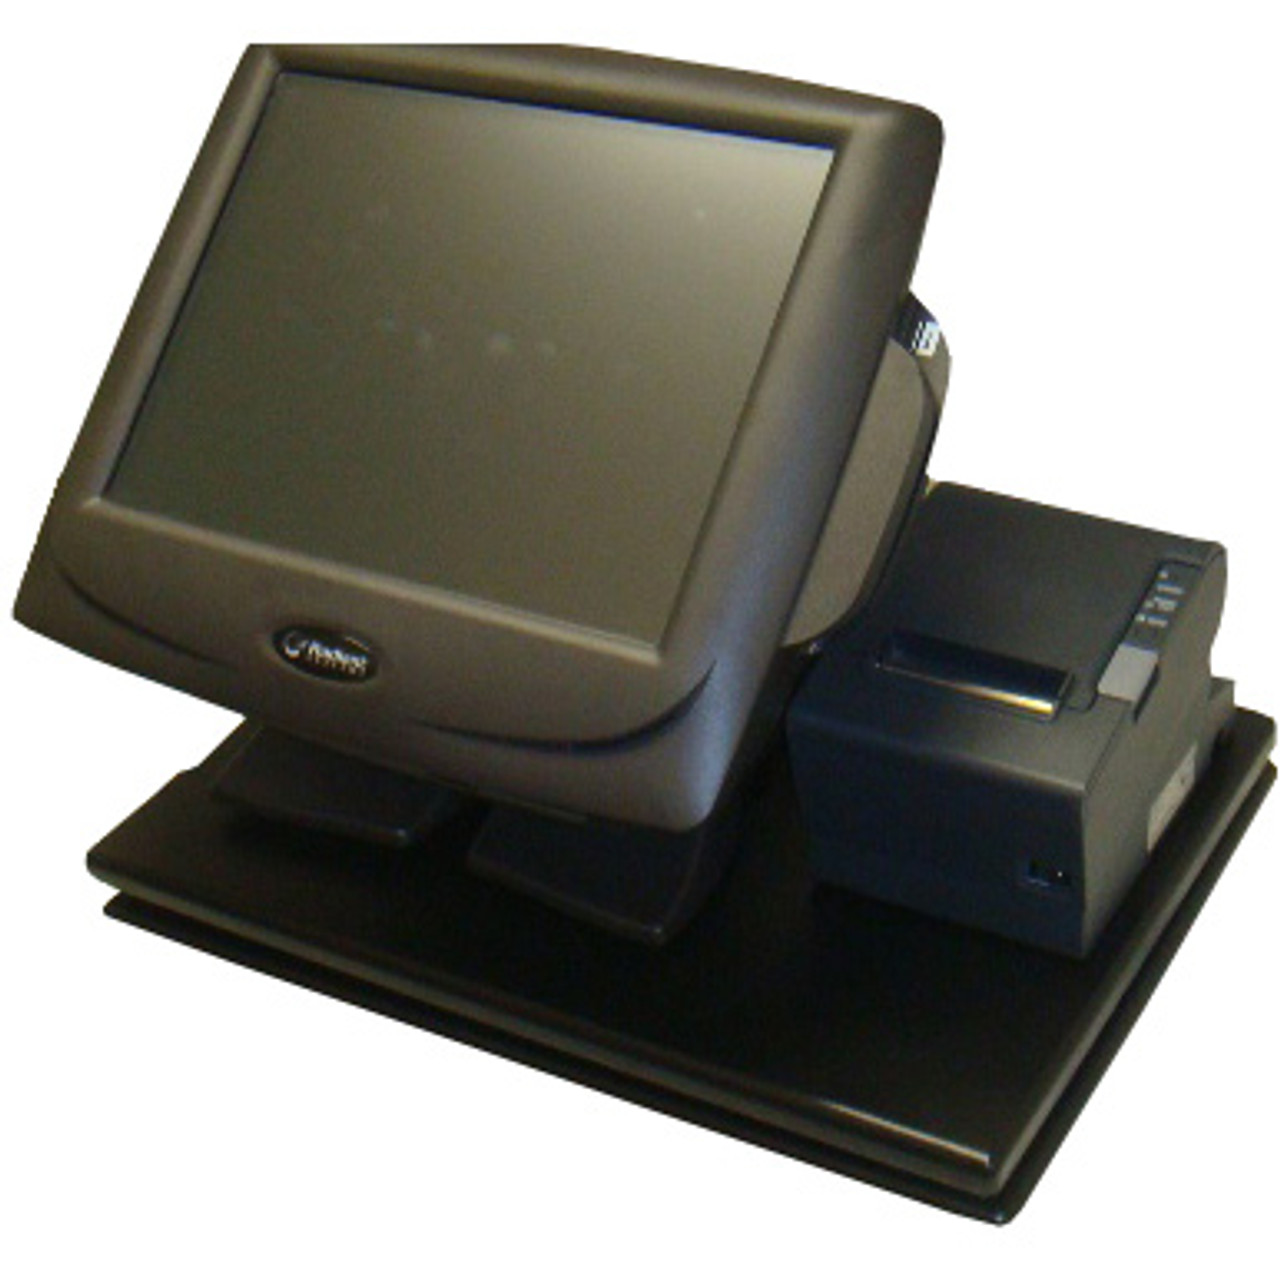 Swivel Stands Credit Card Stand POS Turn Table Platform 15x20 Inch